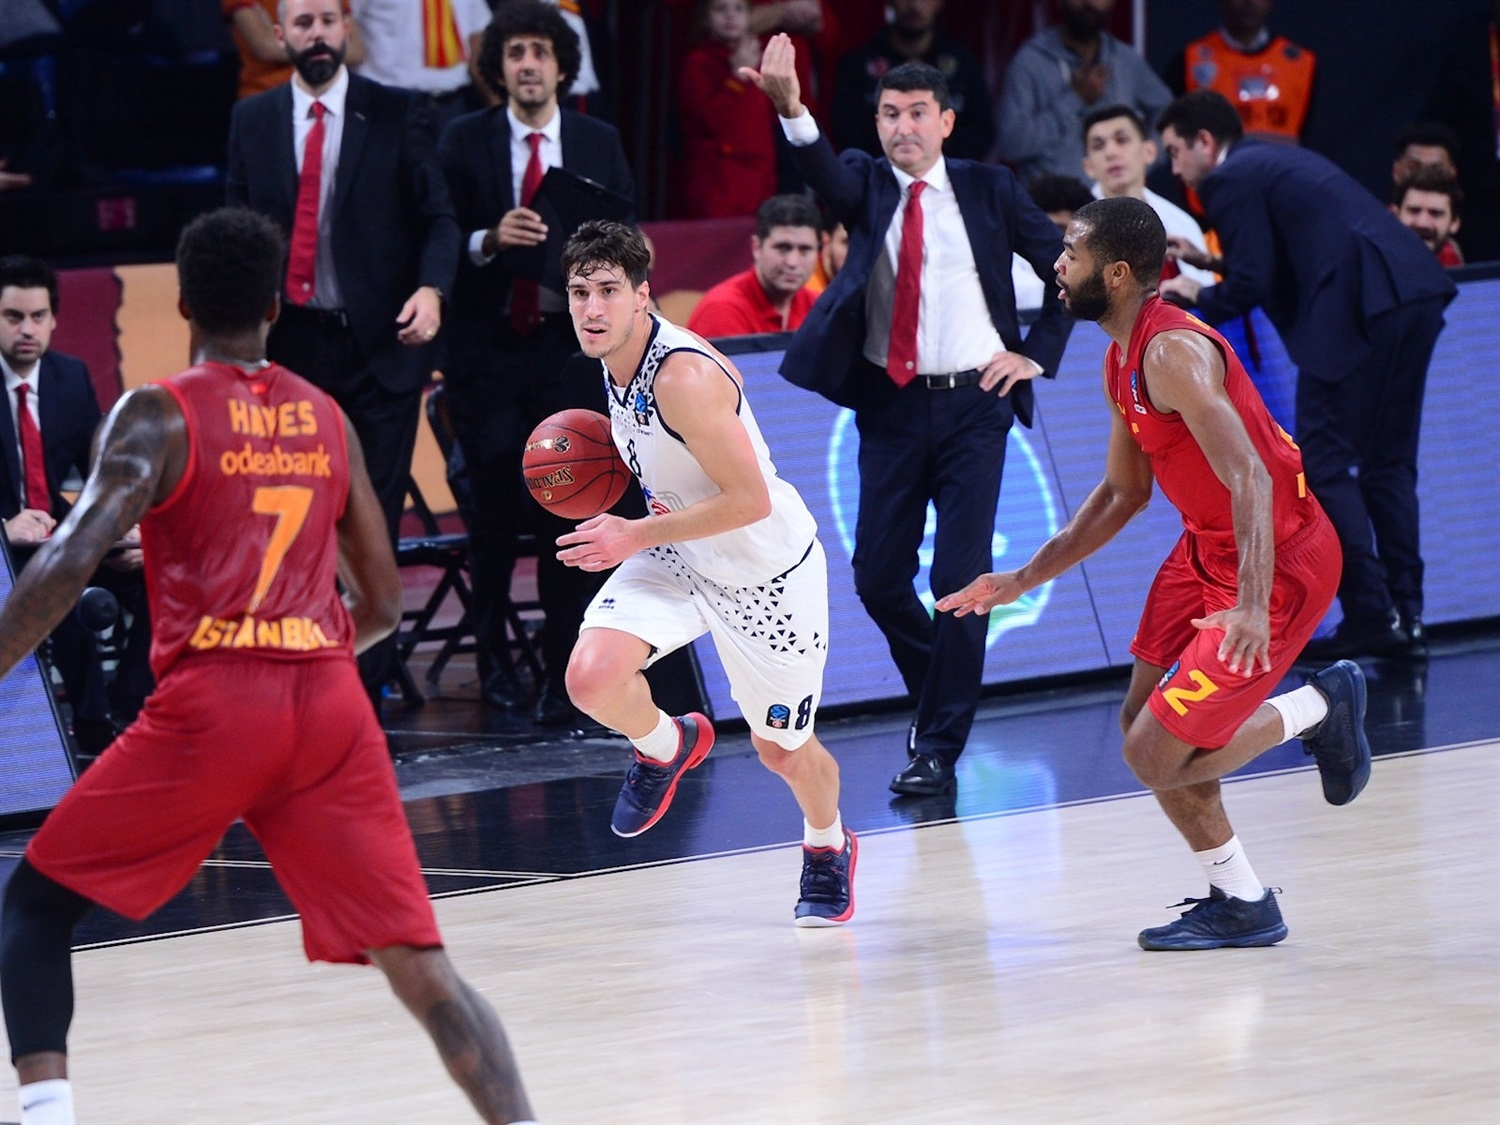 Tommaso Laquintana - Germani Brescia Leonessa (photo Galatasaray) - EC18